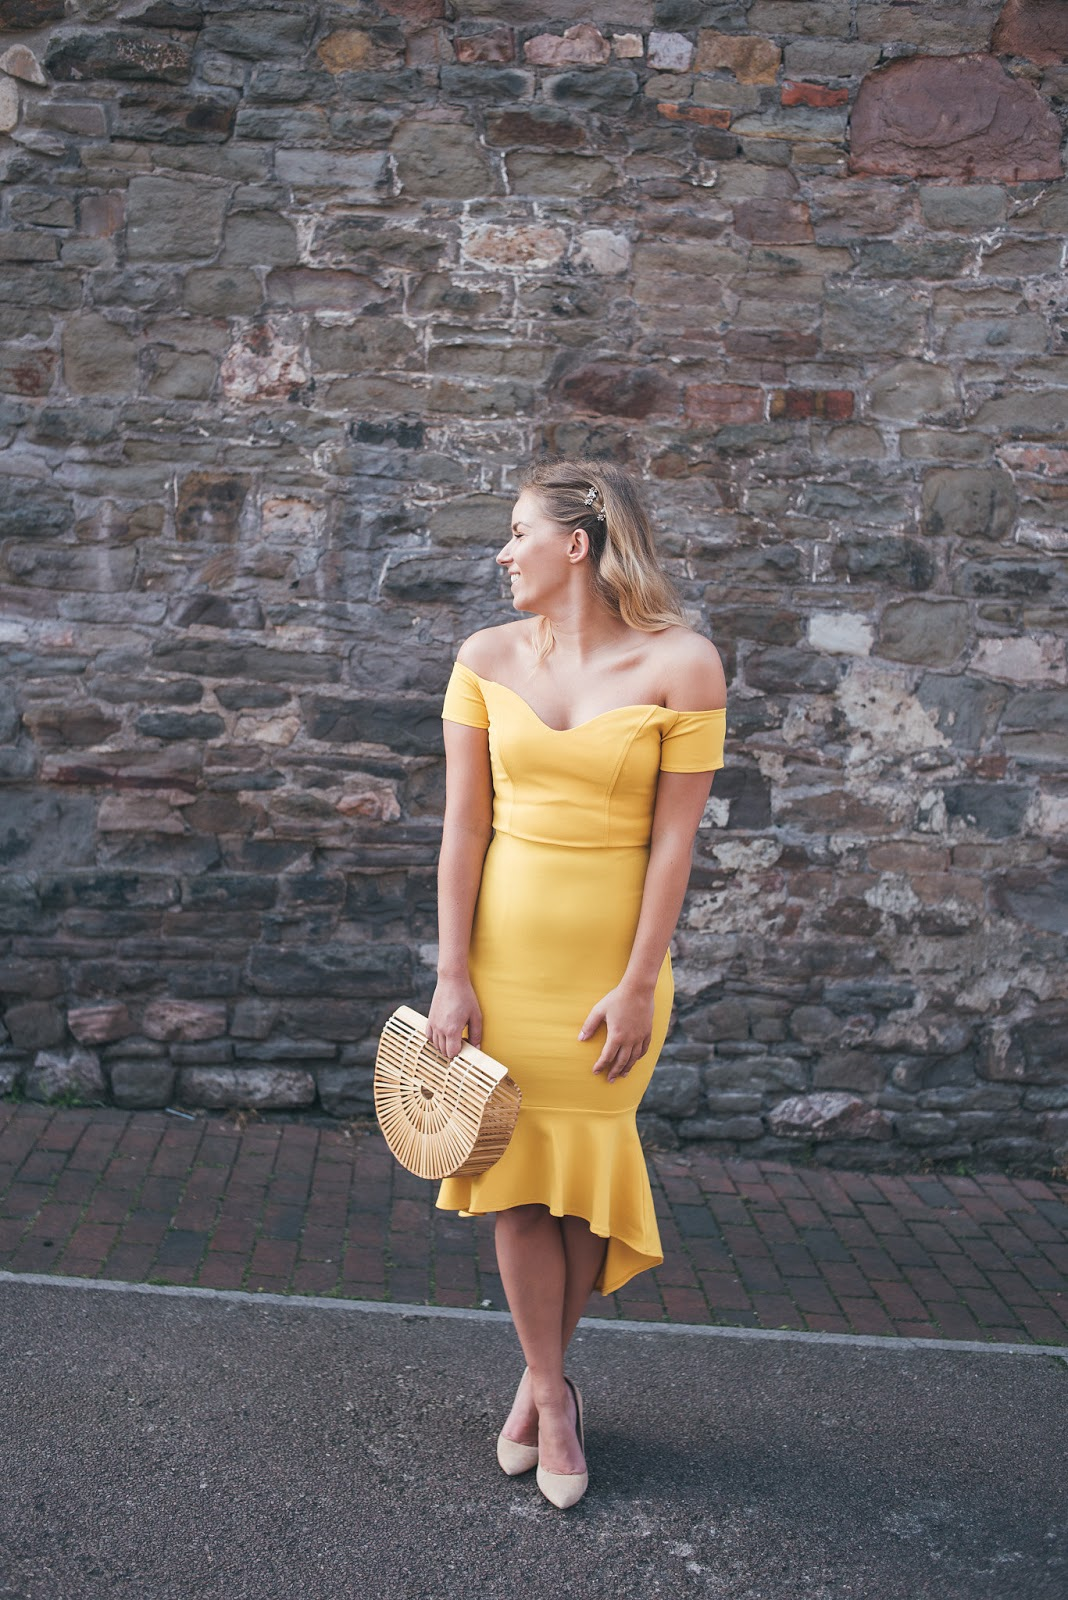 Rachel Emily in Yellow John Zack Dress from ASOS in Front of Stone Wall